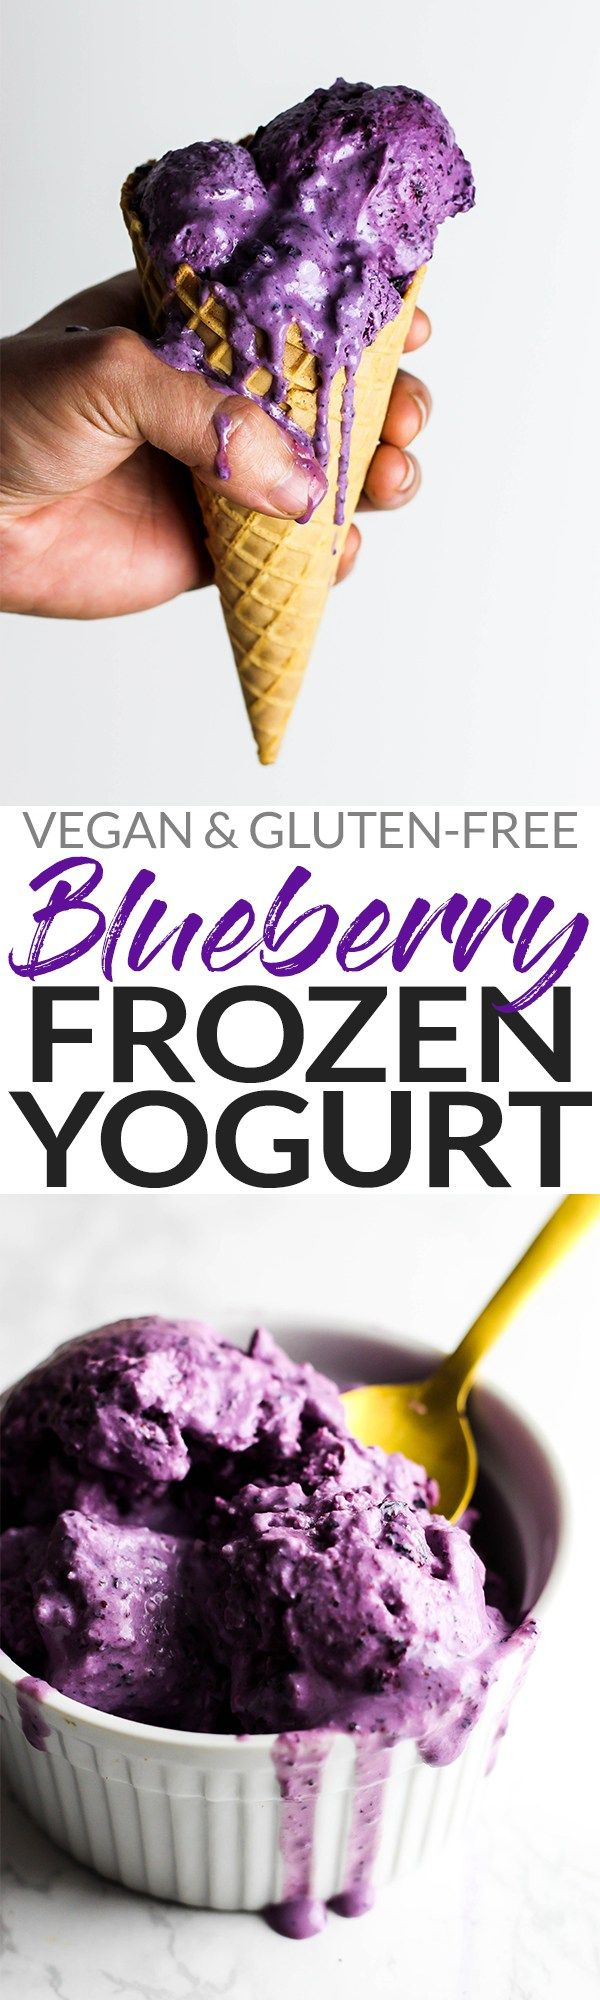 Cool off with a scoop of this refreshing Blueberry Vegan Frozen Yogurt! It's the perfect fruity dessert, plus you could even enjoy it for breakfast. Yum!